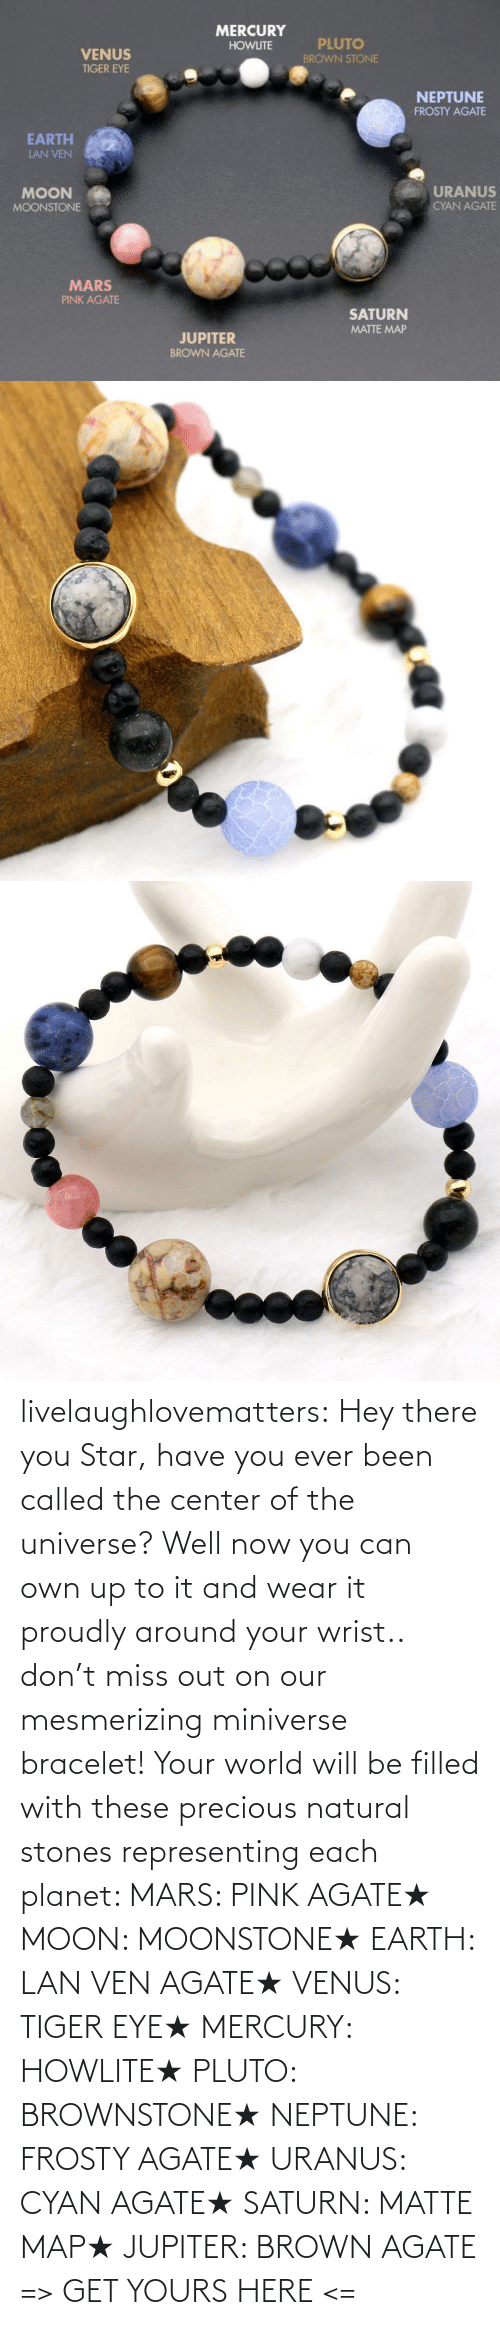 Precious, Tumblr, and Blog: MERCURY  PLUTO  HOWLITE  VENUS  BROWN STONE  TIGER EYE  NEPTUNE  FROSTY AGATE  EARTH  LAN VEN  URANUS  MOON  CYAN AGATE  MOONSTONE  MARS  PINK AGATE  SATURN  MATTE MAP  JUPITER  BROWN AGATE livelaughlovematters: Hey there you Star, have you ever been called the center of the universe? Well now you can own up to it and wear it proudly around your wrist.. don't miss out on our mesmerizing miniverse bracelet! Your world will be filled with these precious natural stones representing each planet:  MARS: PINK AGATE★ MOON: MOONSTONE★ EARTH: LAN VEN AGATE★ VENUS: TIGER EYE★ MERCURY: HOWLITE★ PLUTO: BROWNSTONE★ NEPTUNE: FROSTY AGATE★ URANUS: CYAN AGATE★ SATURN: MATTE MAP★ JUPITER: BROWN AGATE => GET YOURS HERE <=